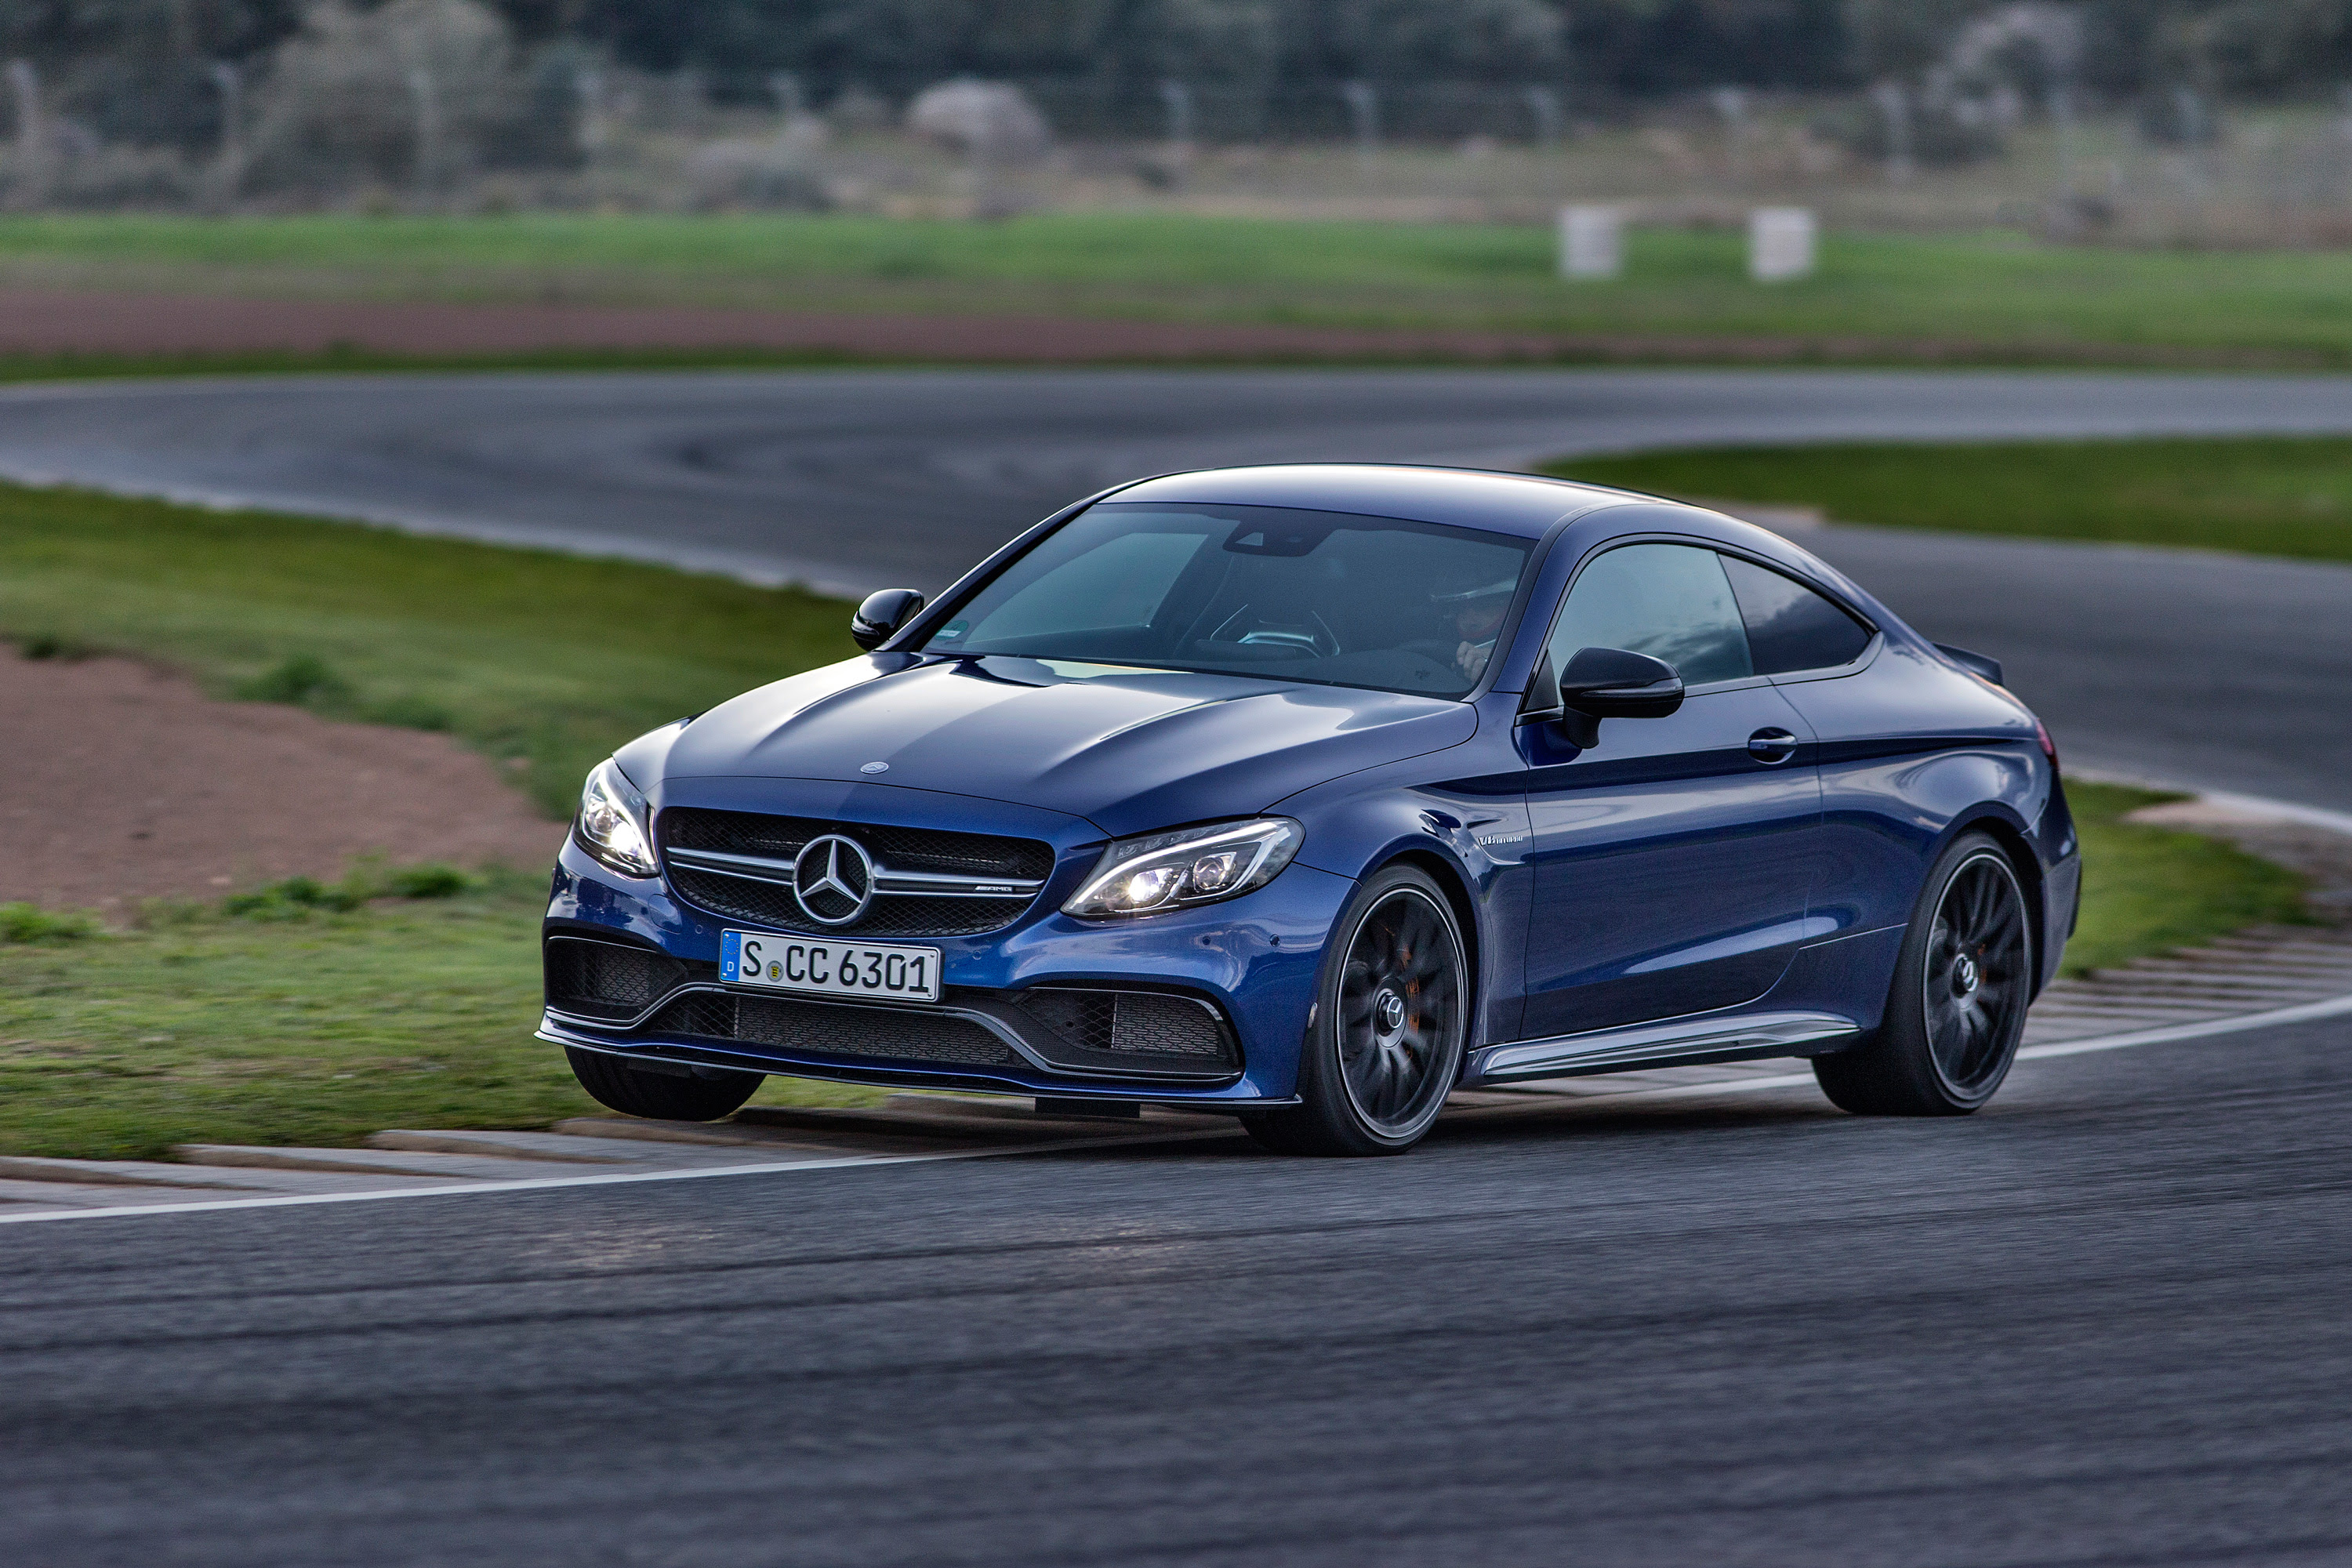 Mercedes-AMG C63 S coupe pricing and specifications ...